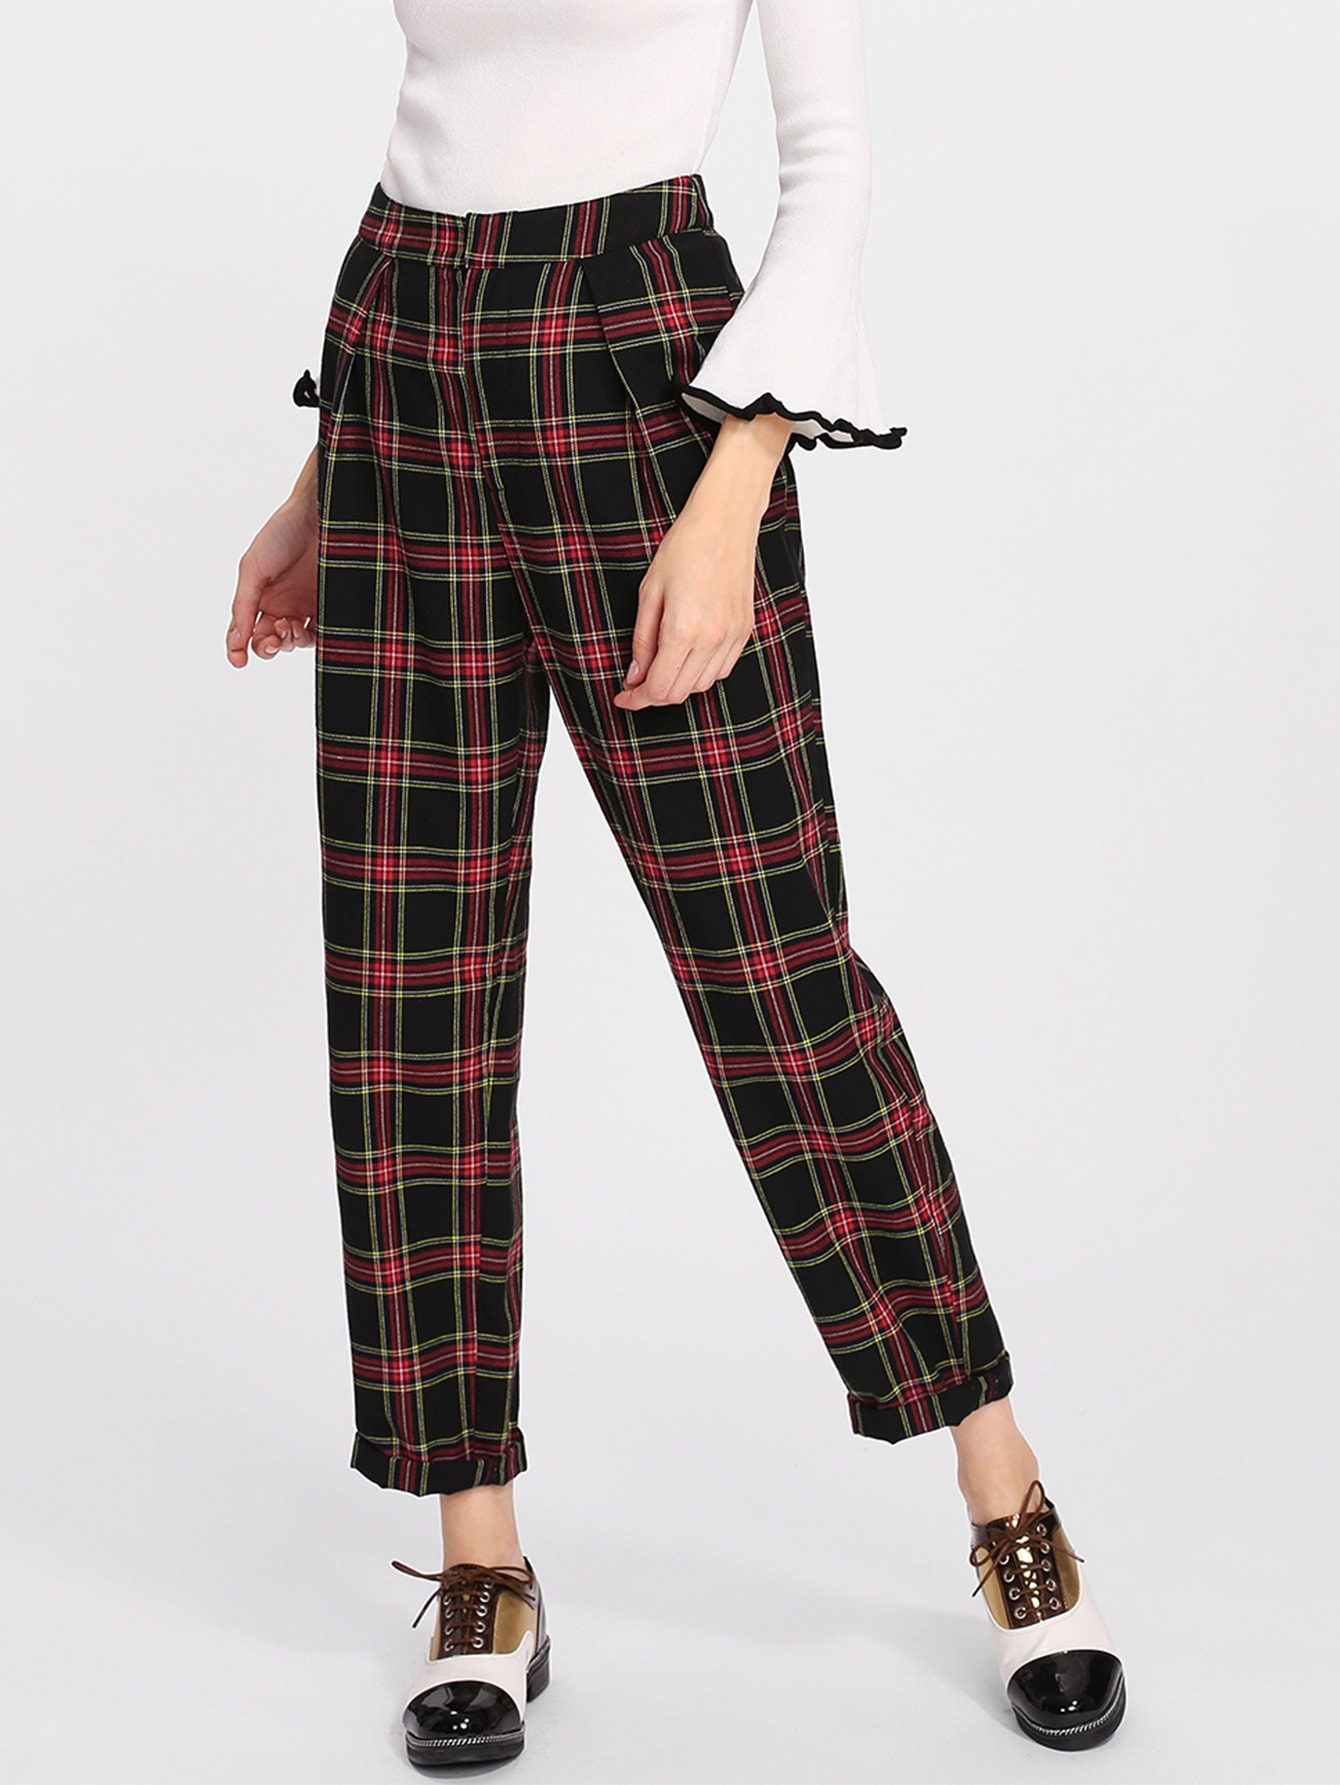 Rolled Up Hem Plaid Carrot Pants solid rolled hem pants